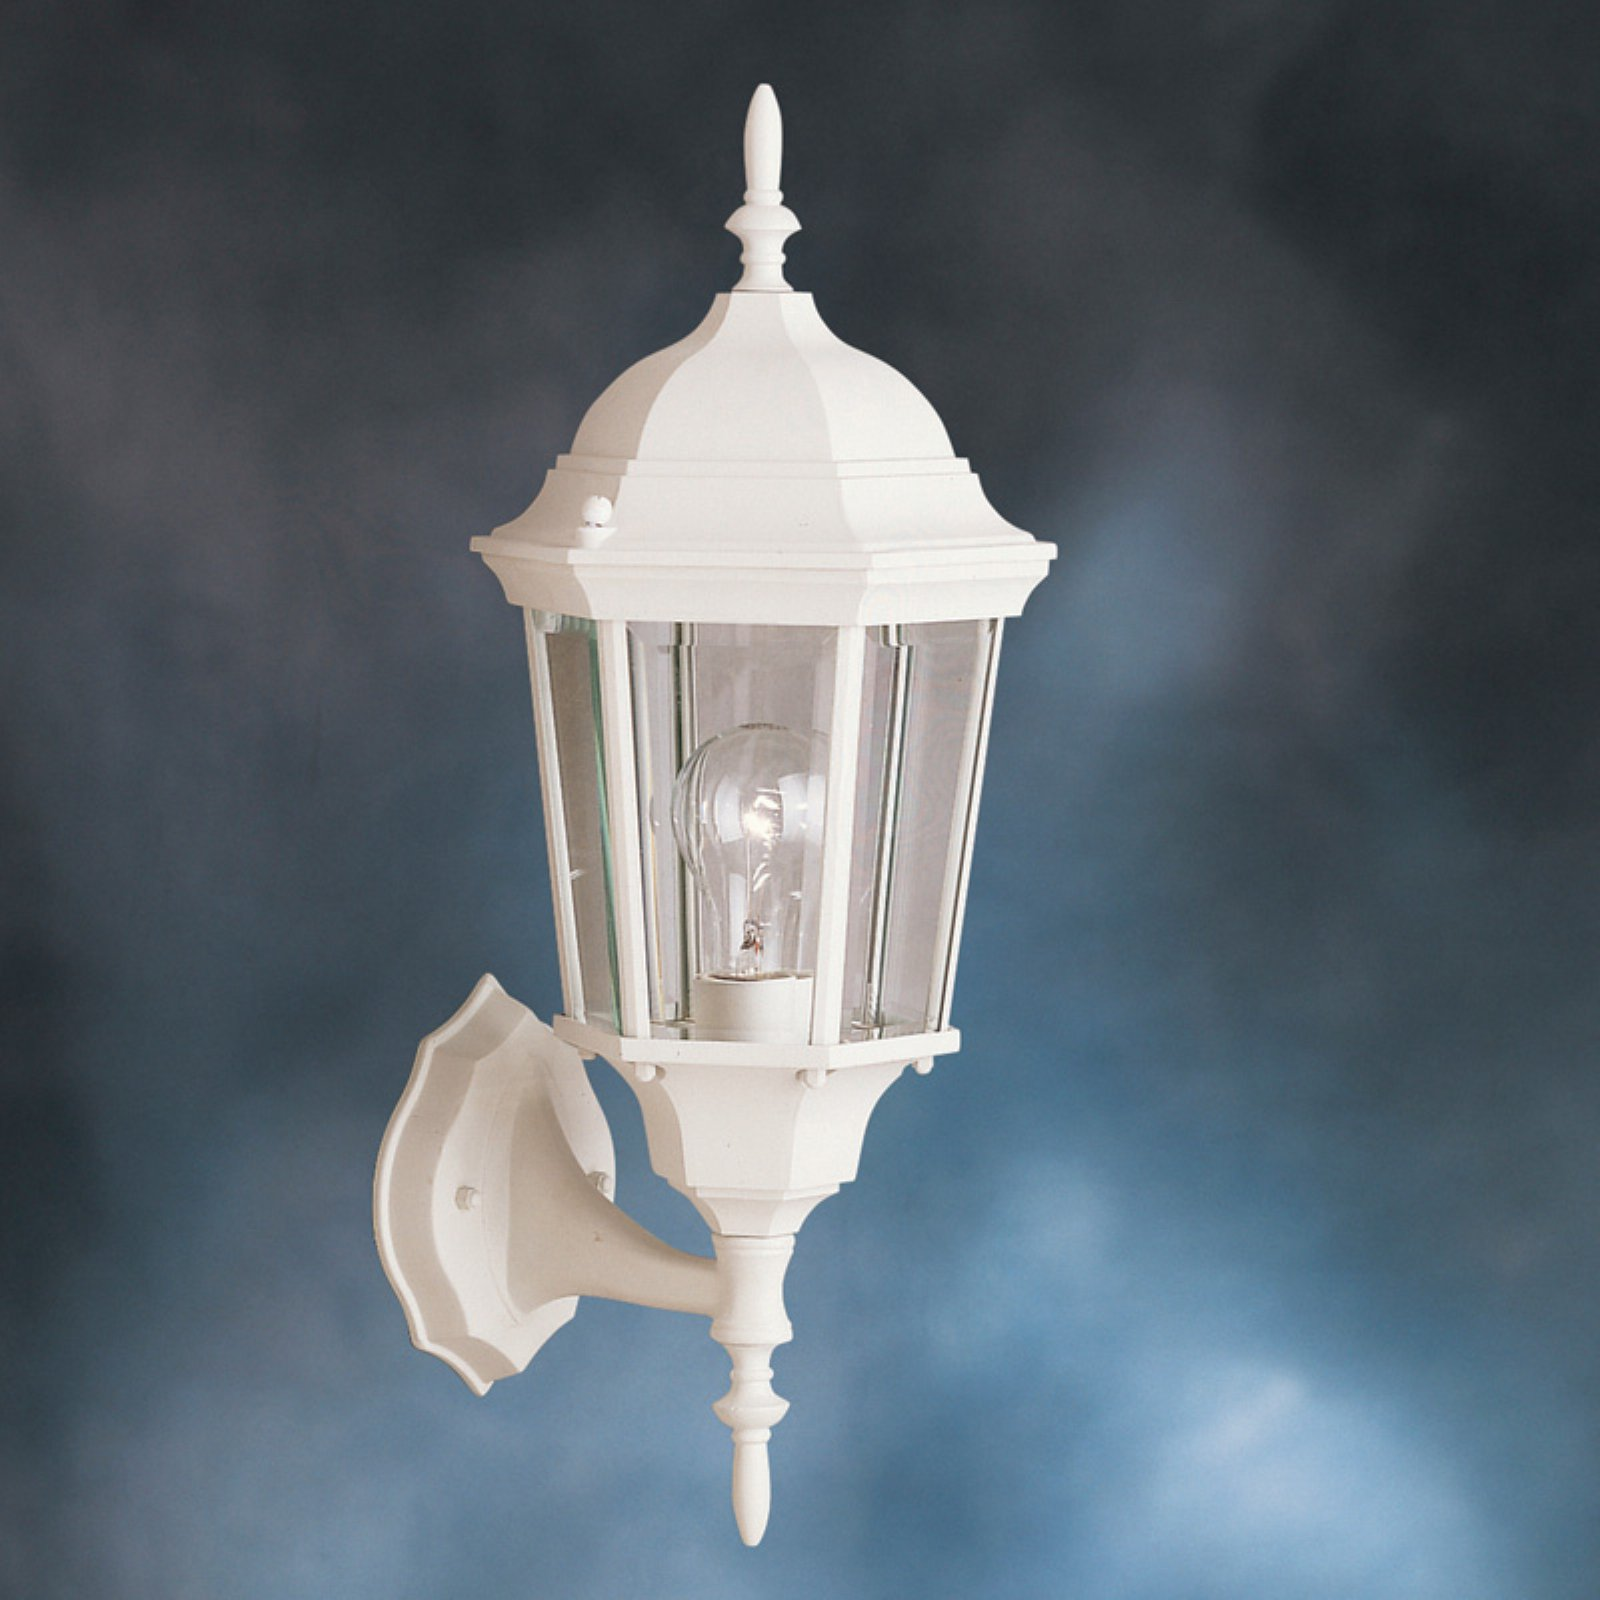 Kichler Madison 9653 Outdoor Wall Lantern - 8 in.